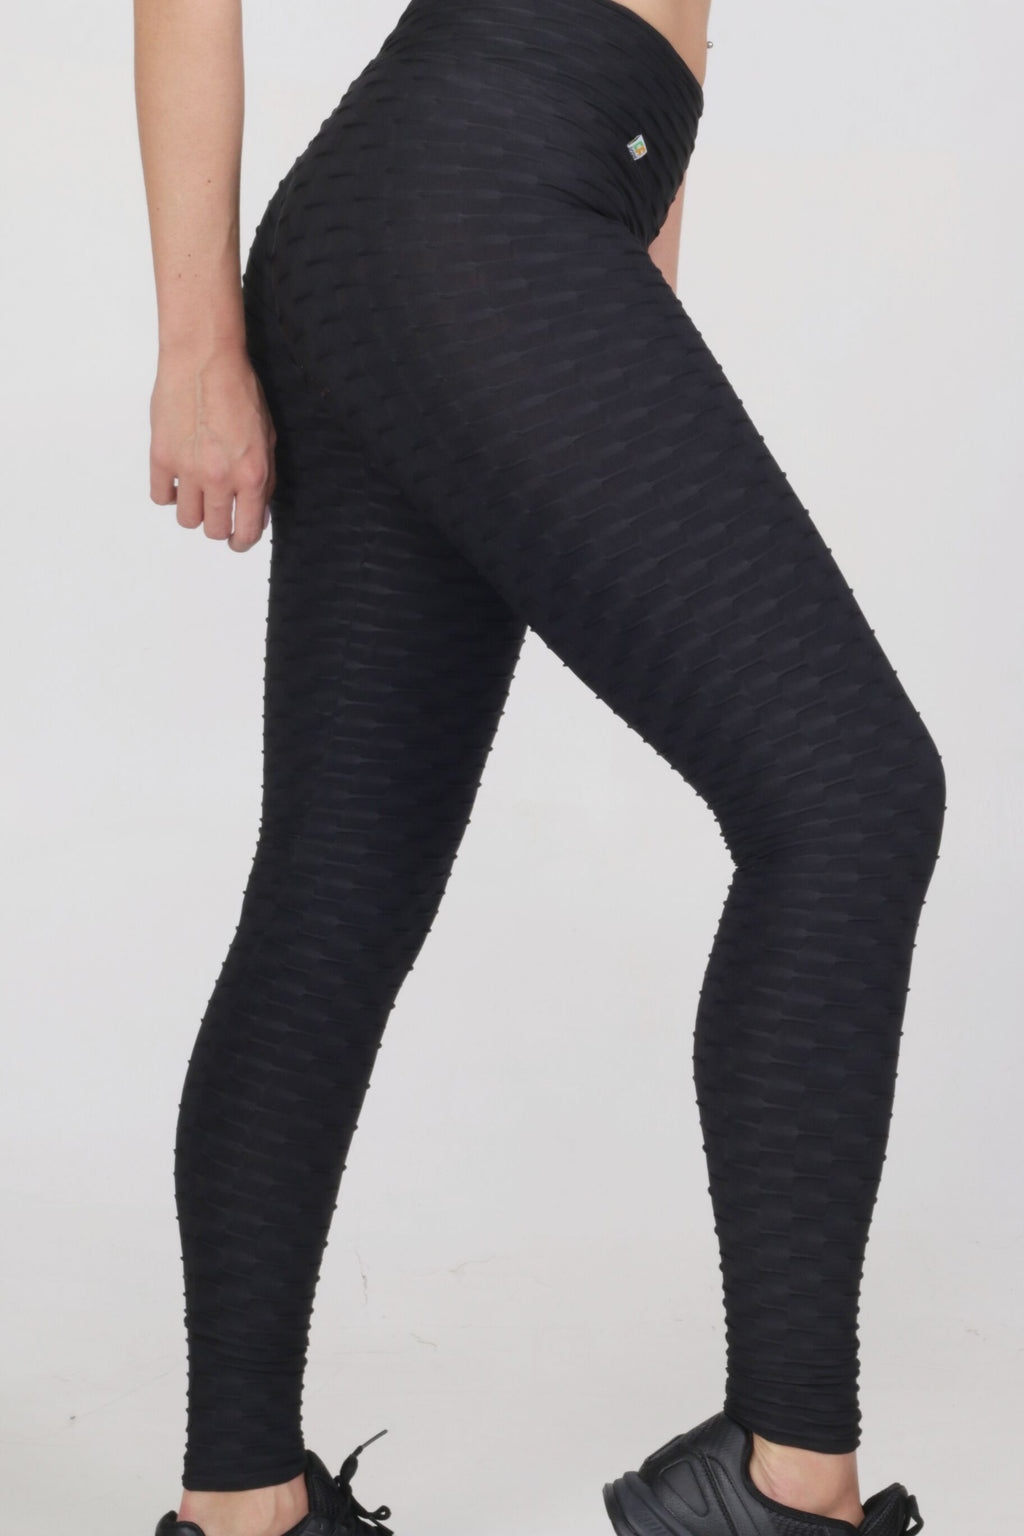 Basic black brocado legging